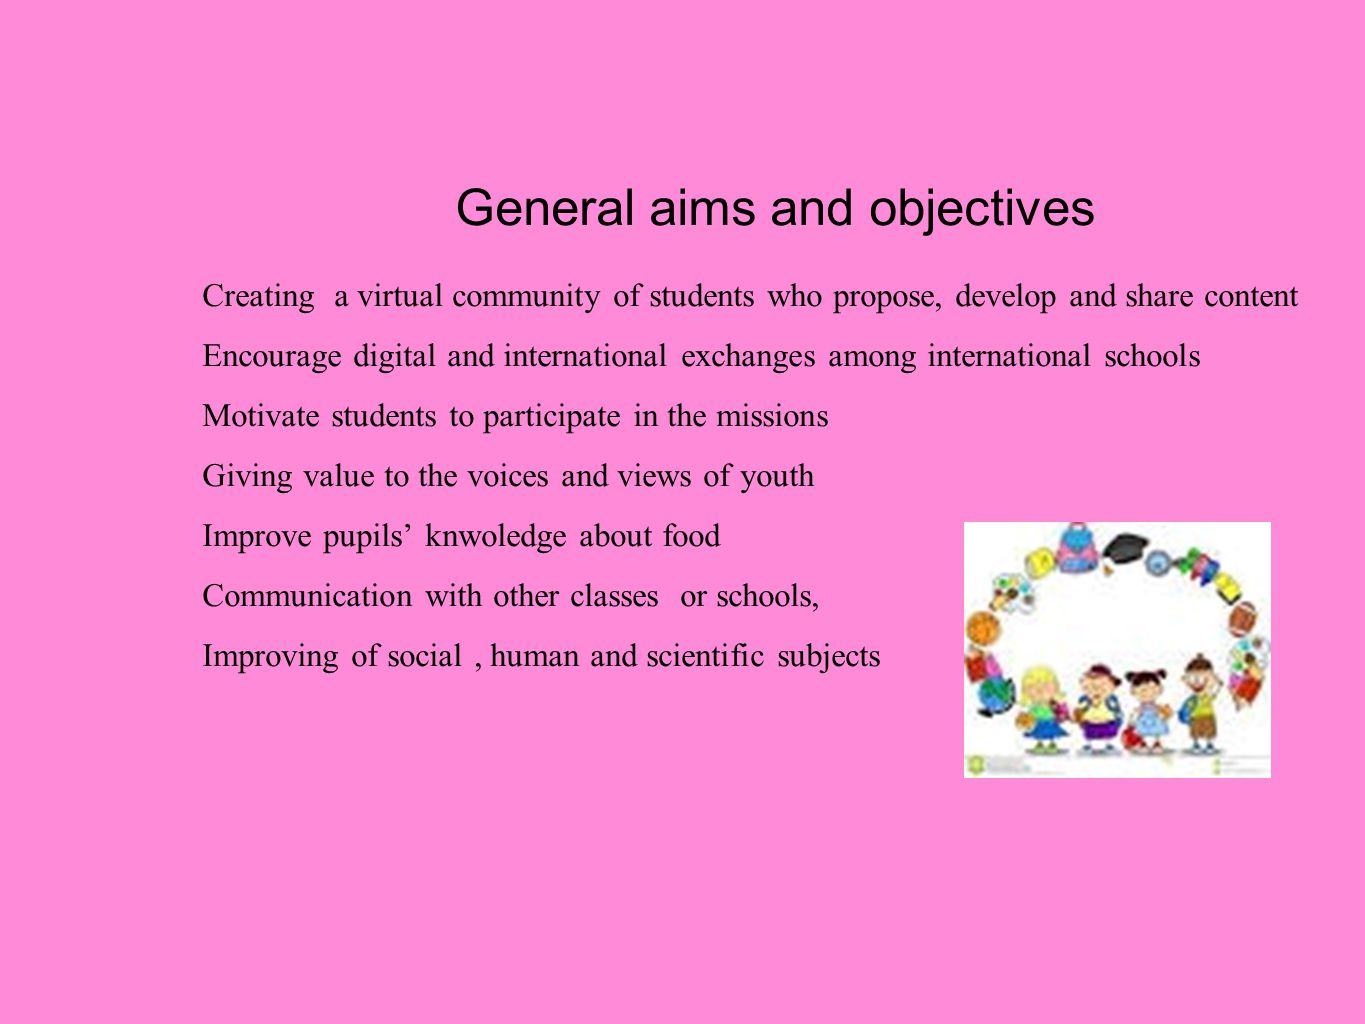 General aims and objectives Creating a virtual community of students who propose, develop and share content Encourage digital and international exchanges among international schools Motivate students to participate in the missions Giving value to the voices and views of youth Improve pupils' knwoledge about food Communication with other classes or schools, Improving of social, human and scientific subjects